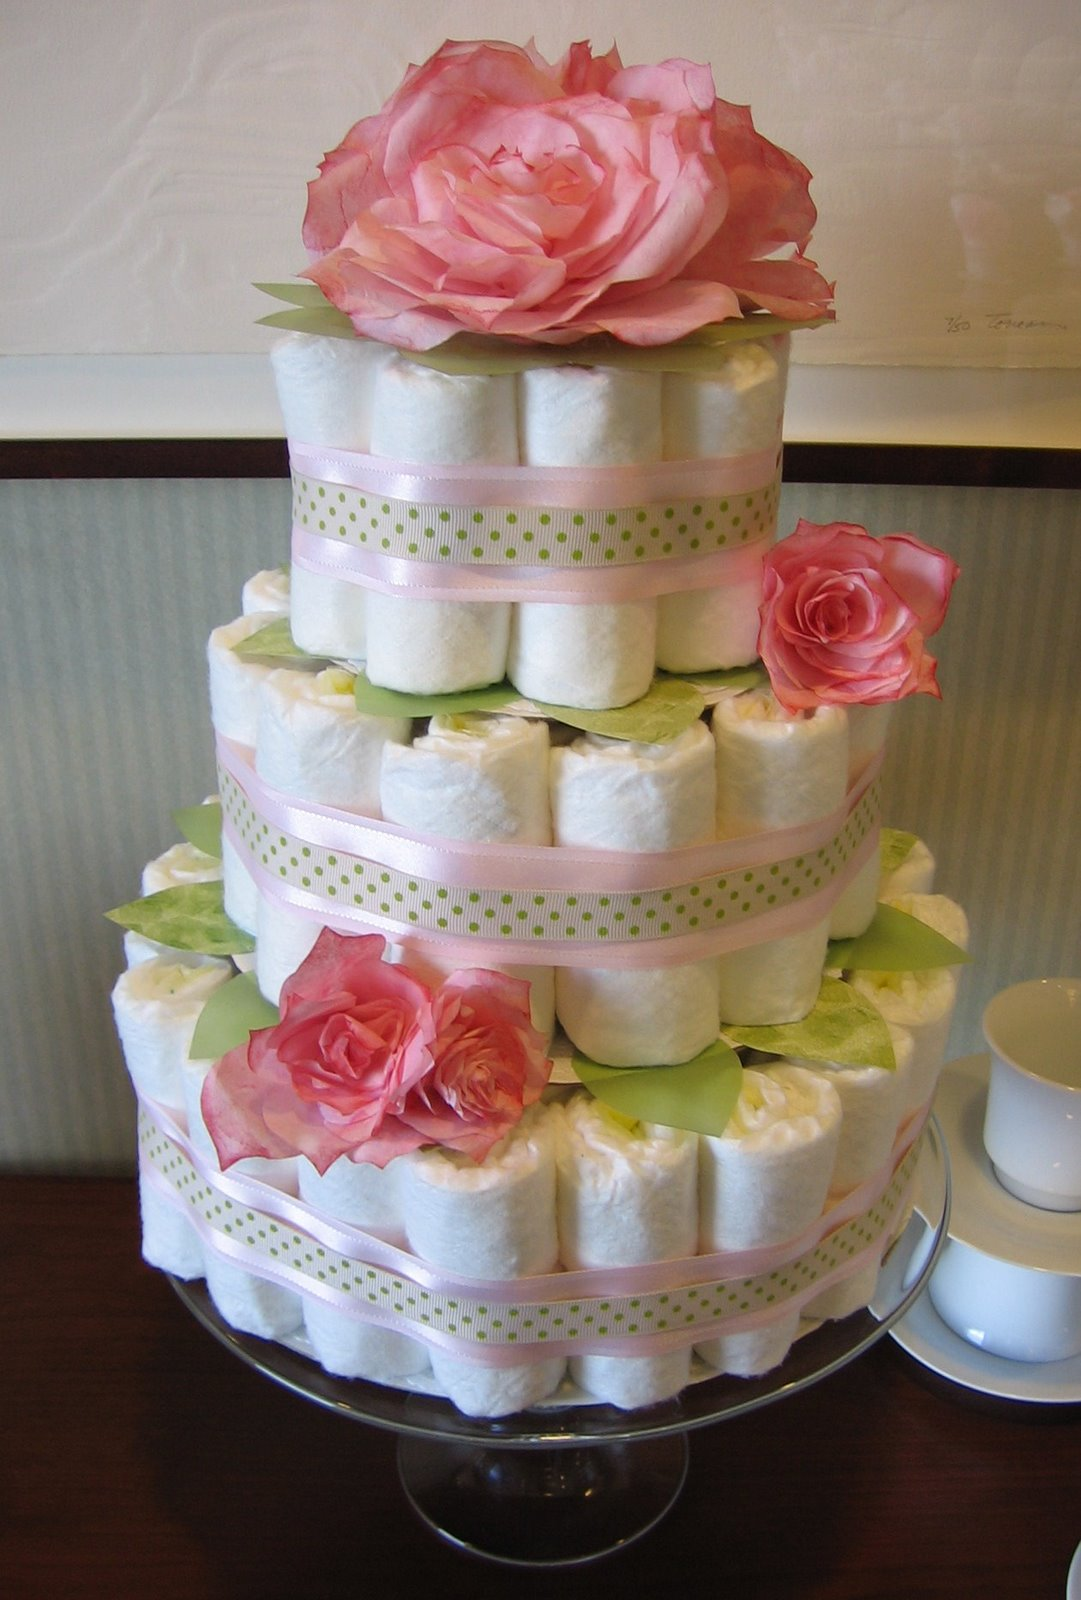 Diaper Cake Centerpiece For Baby Shower : Frugal Home Design: DIY Baby Shower Decor Ideas